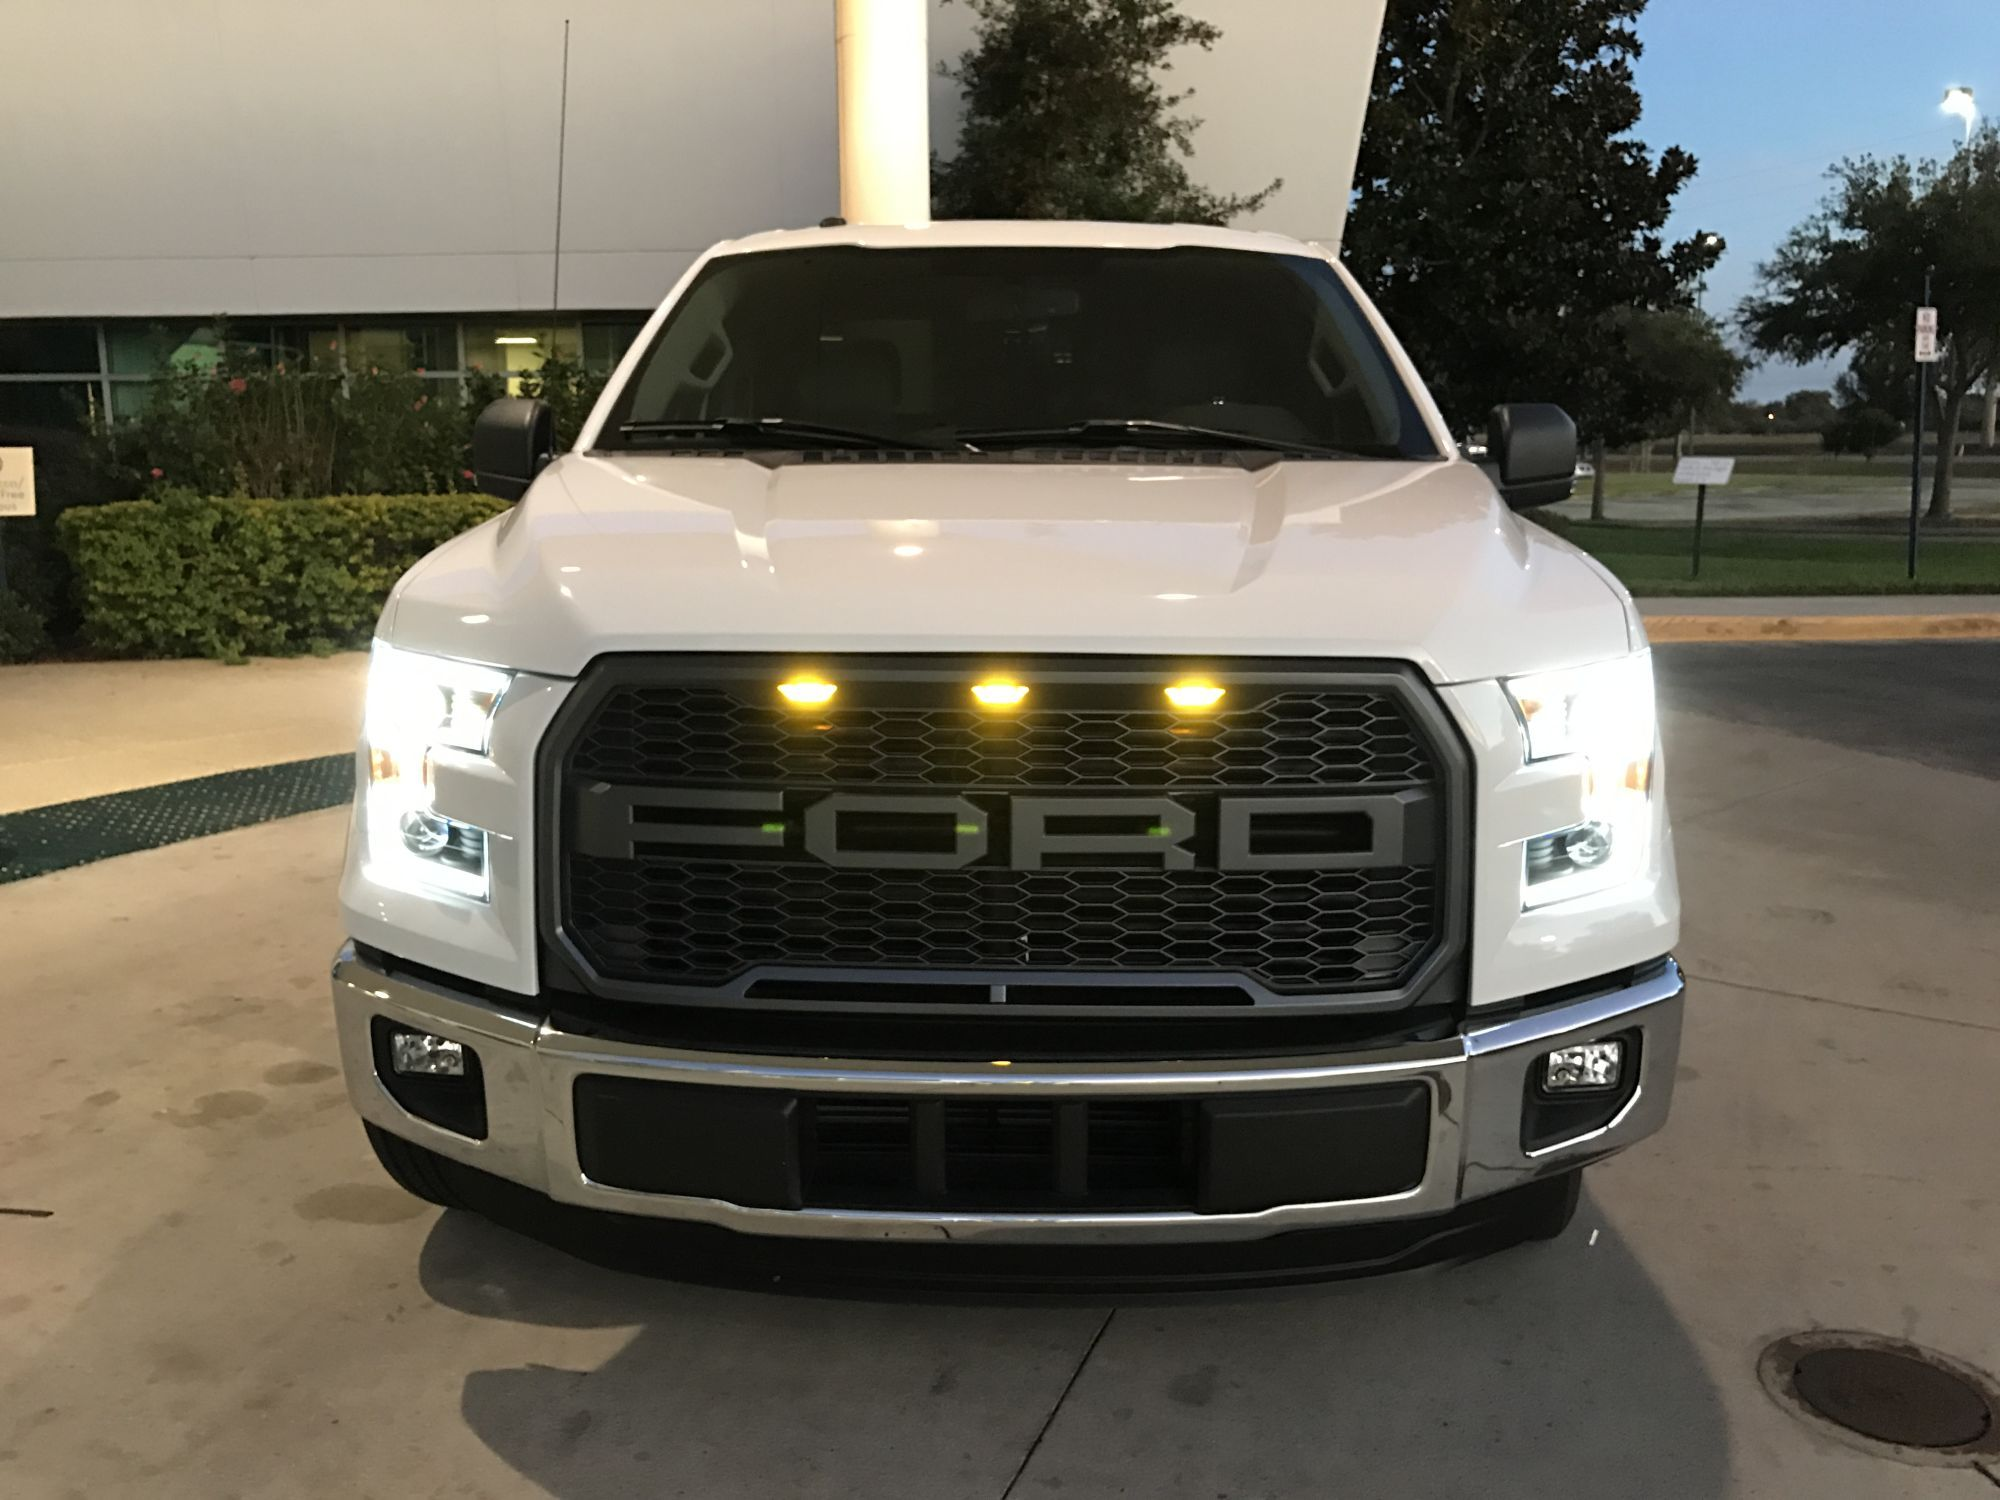 What Mods Changes Have You Done To Your 2015 Or 2016 Page 339 Ford F150 Forum Community Of Ford Truck Fans F150 Ford F150 Truck Mods